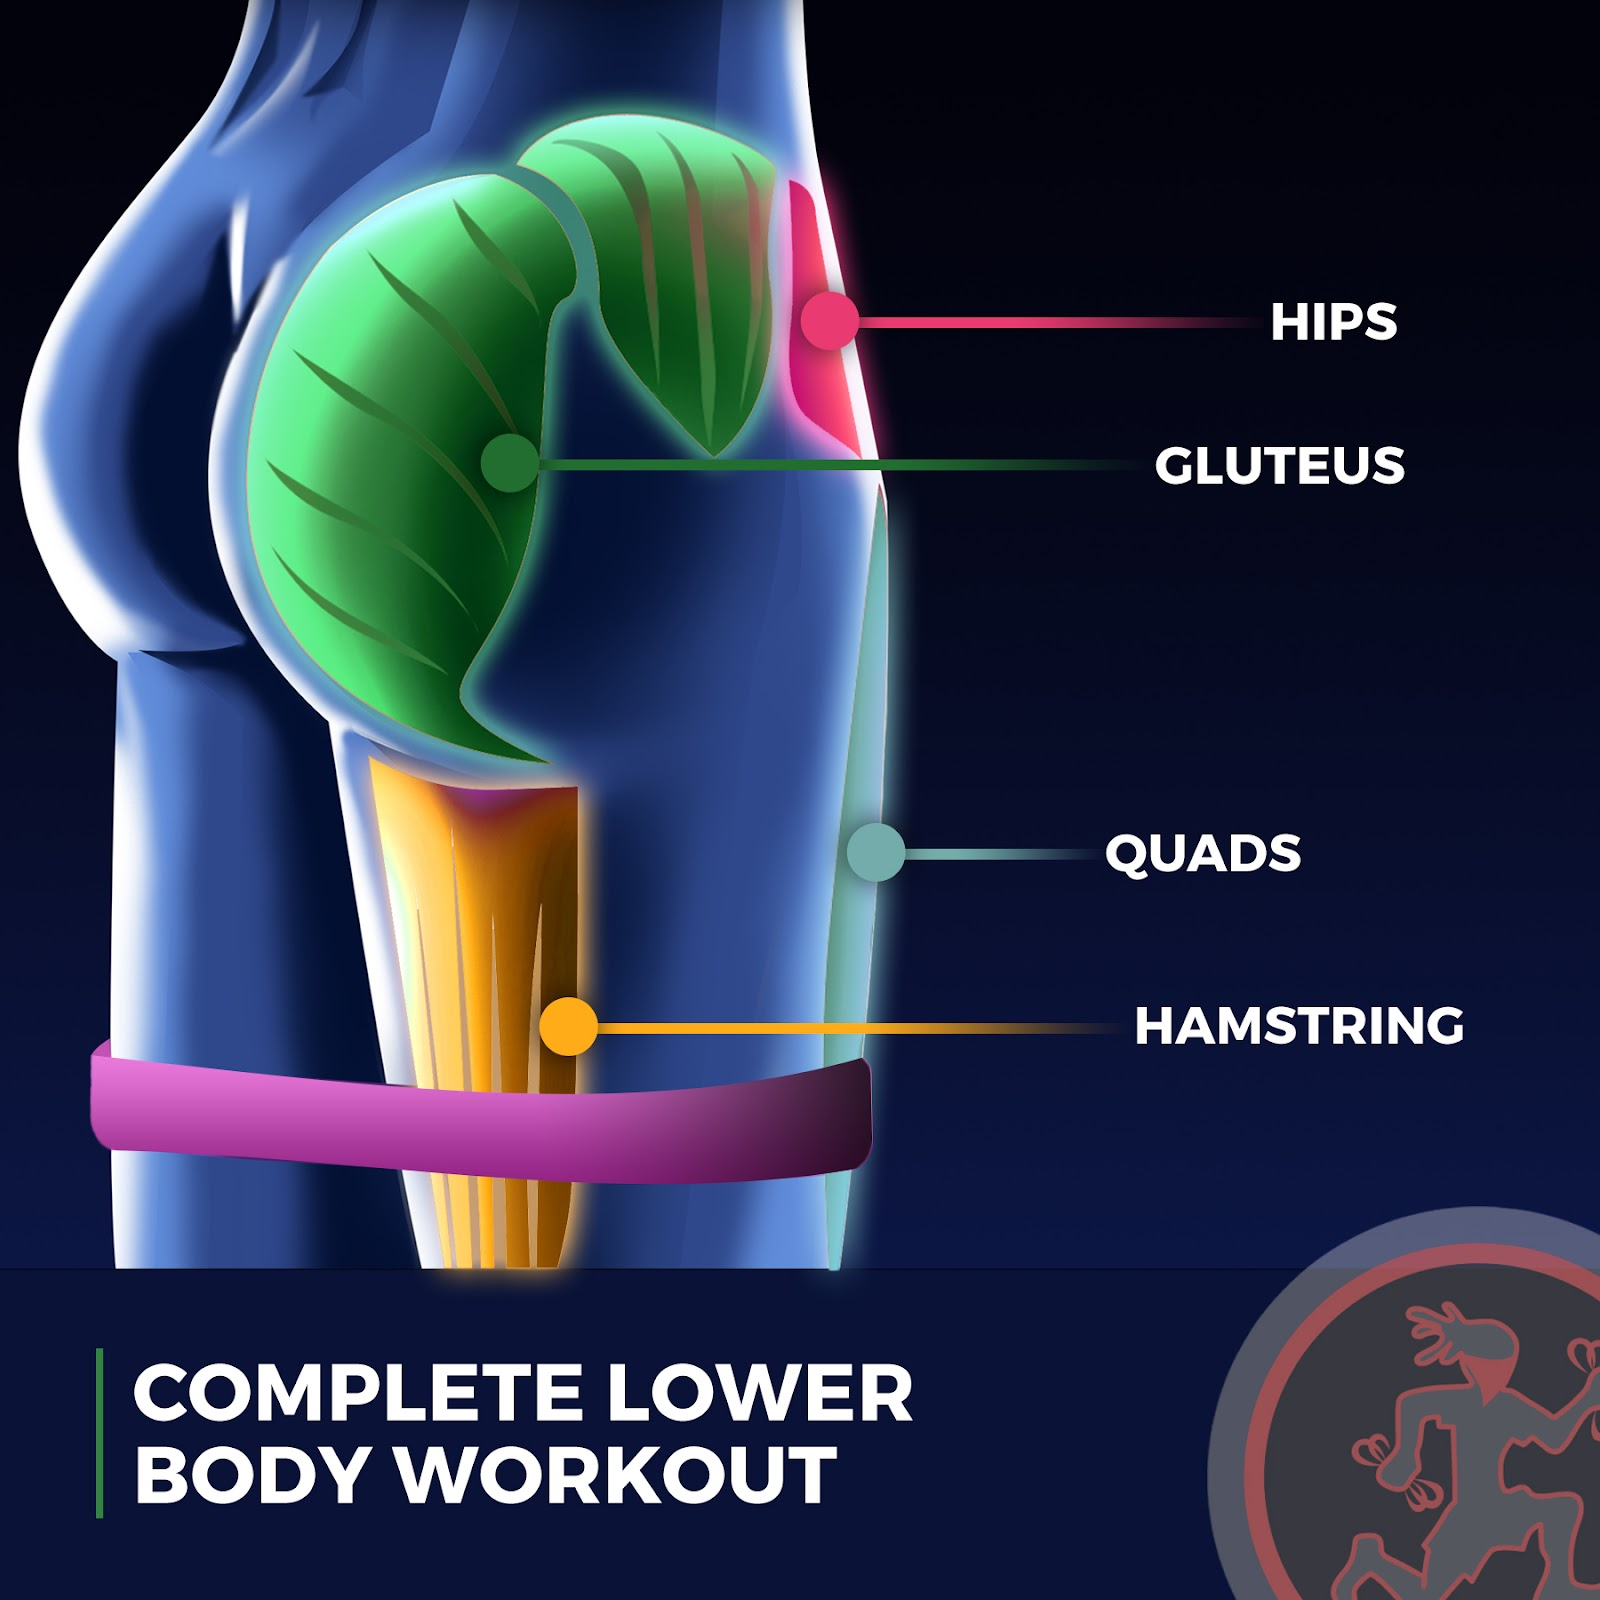 """bdd20ec3d Booty bands are 12"""" long latex mini bands. They are used to rapidly  activate your glutes and engage your hips through an array of lower body  exercises."""